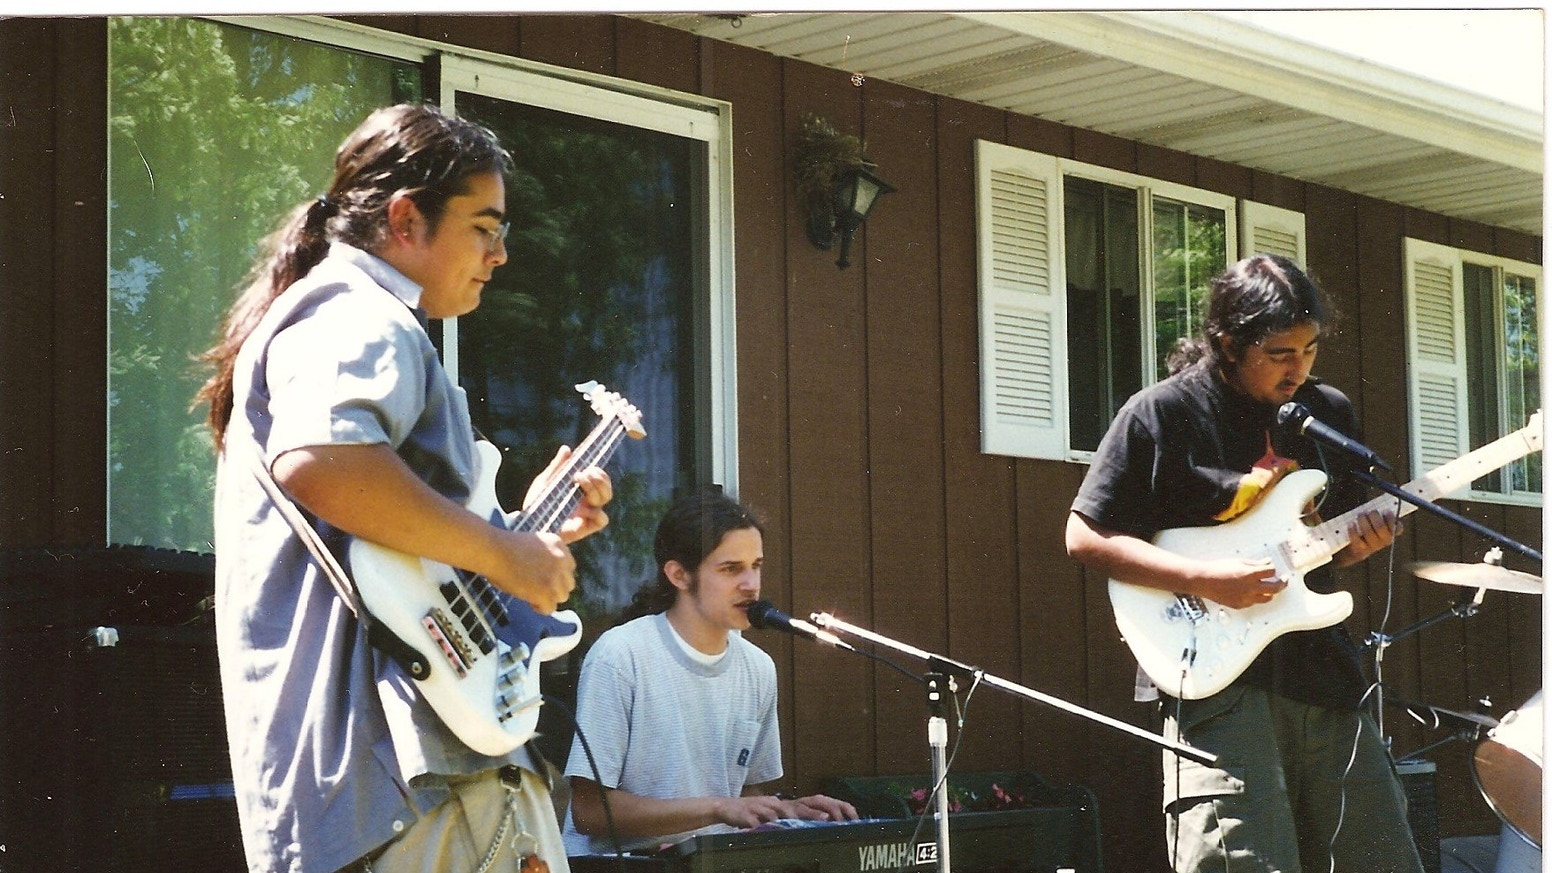 circa 1995: LT group seeks to improvise in a minimal rock setting. Guitar, Rhodes, bass, drums.